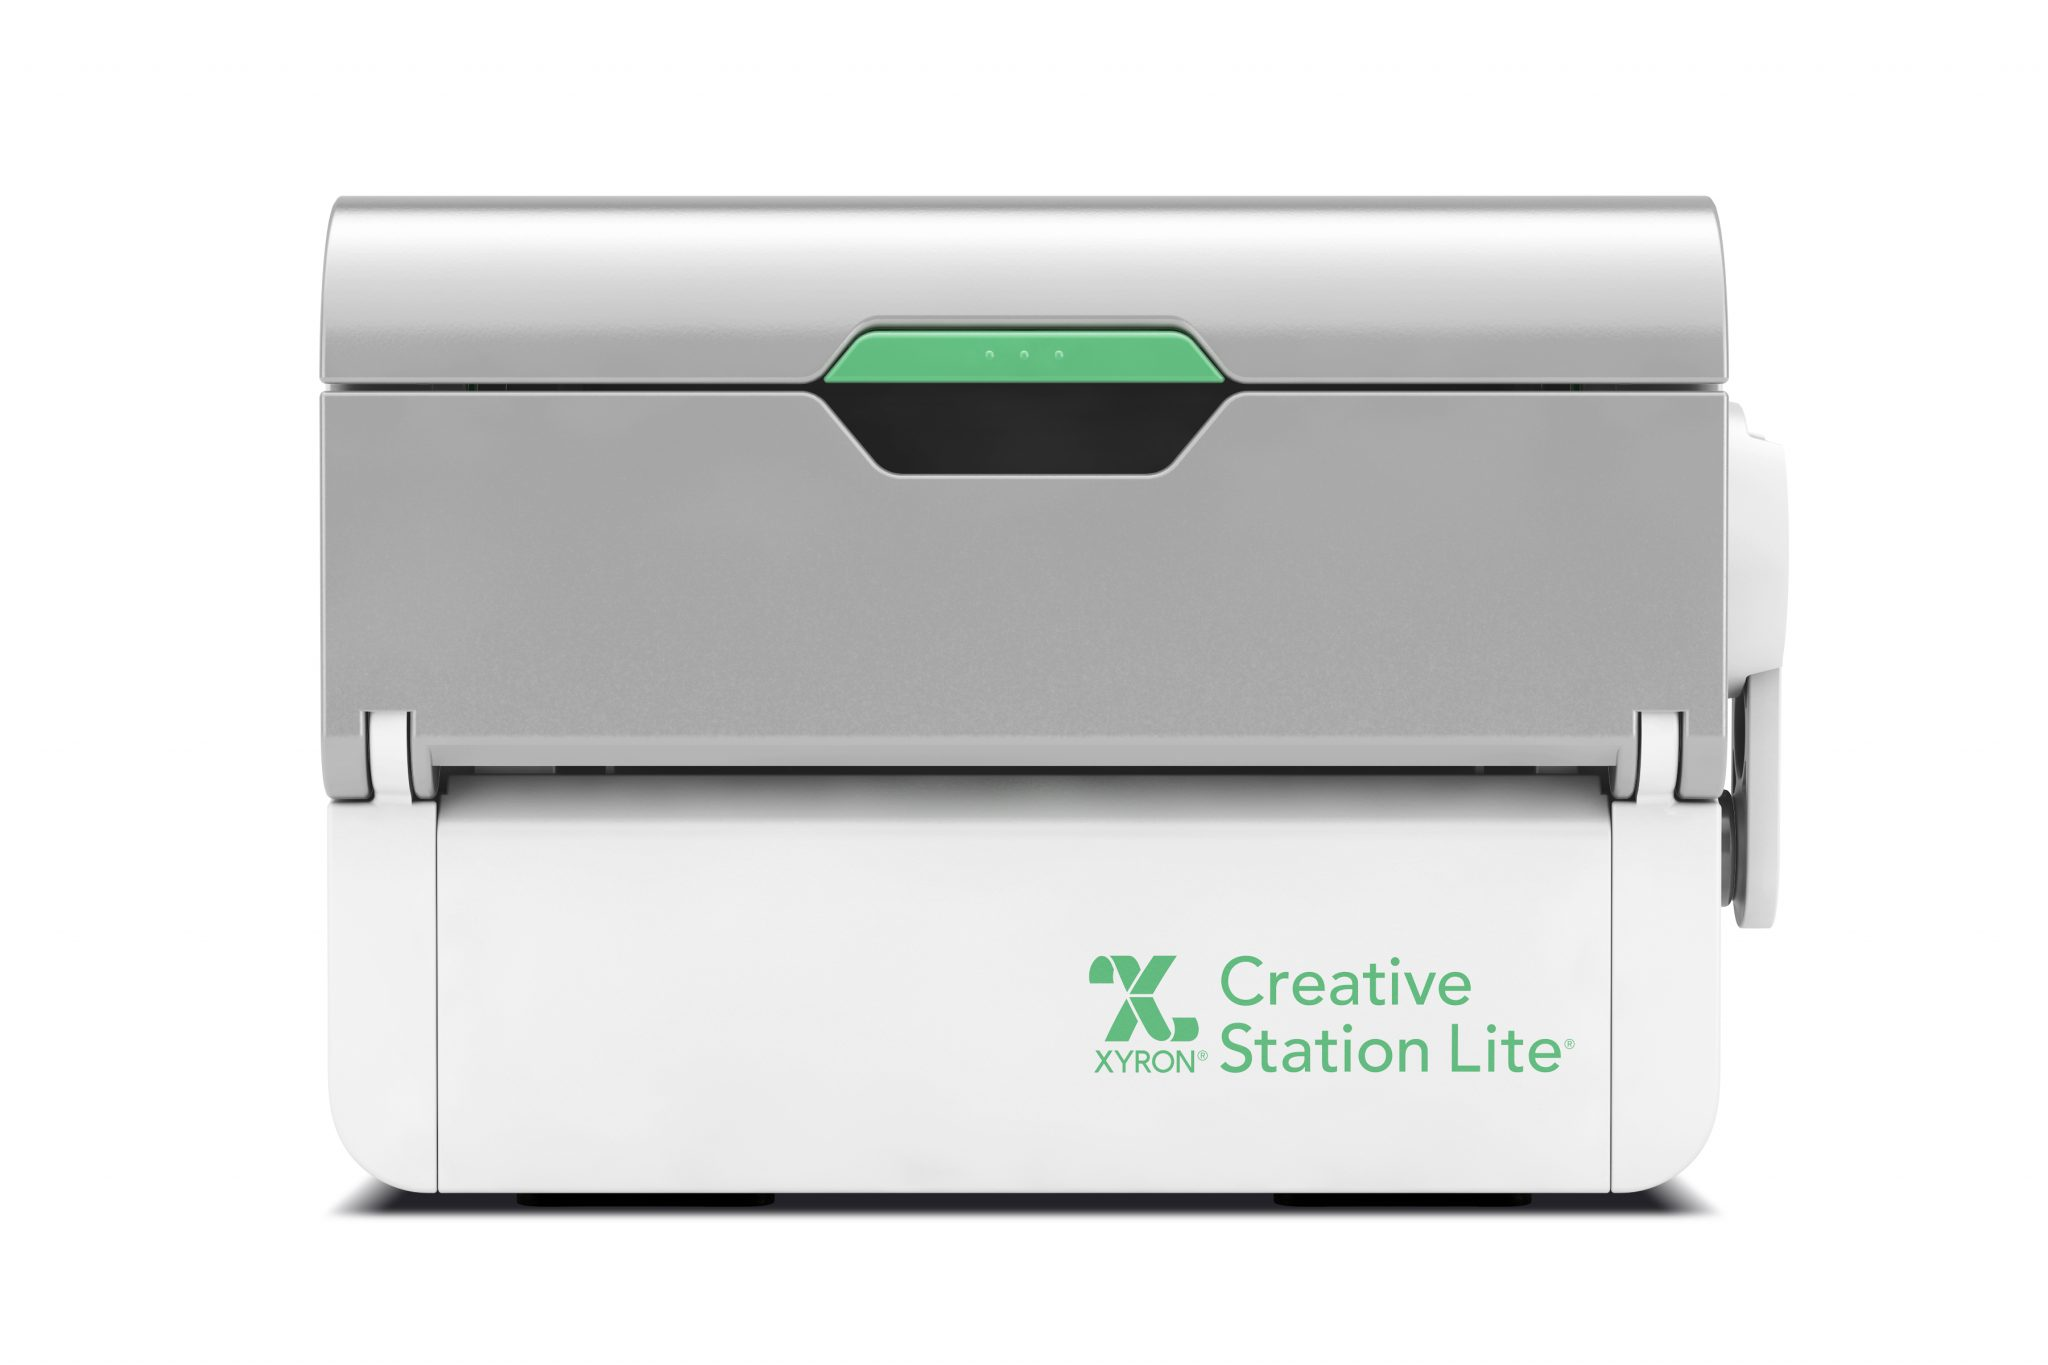 Xyron Creative Station Lite, 5in